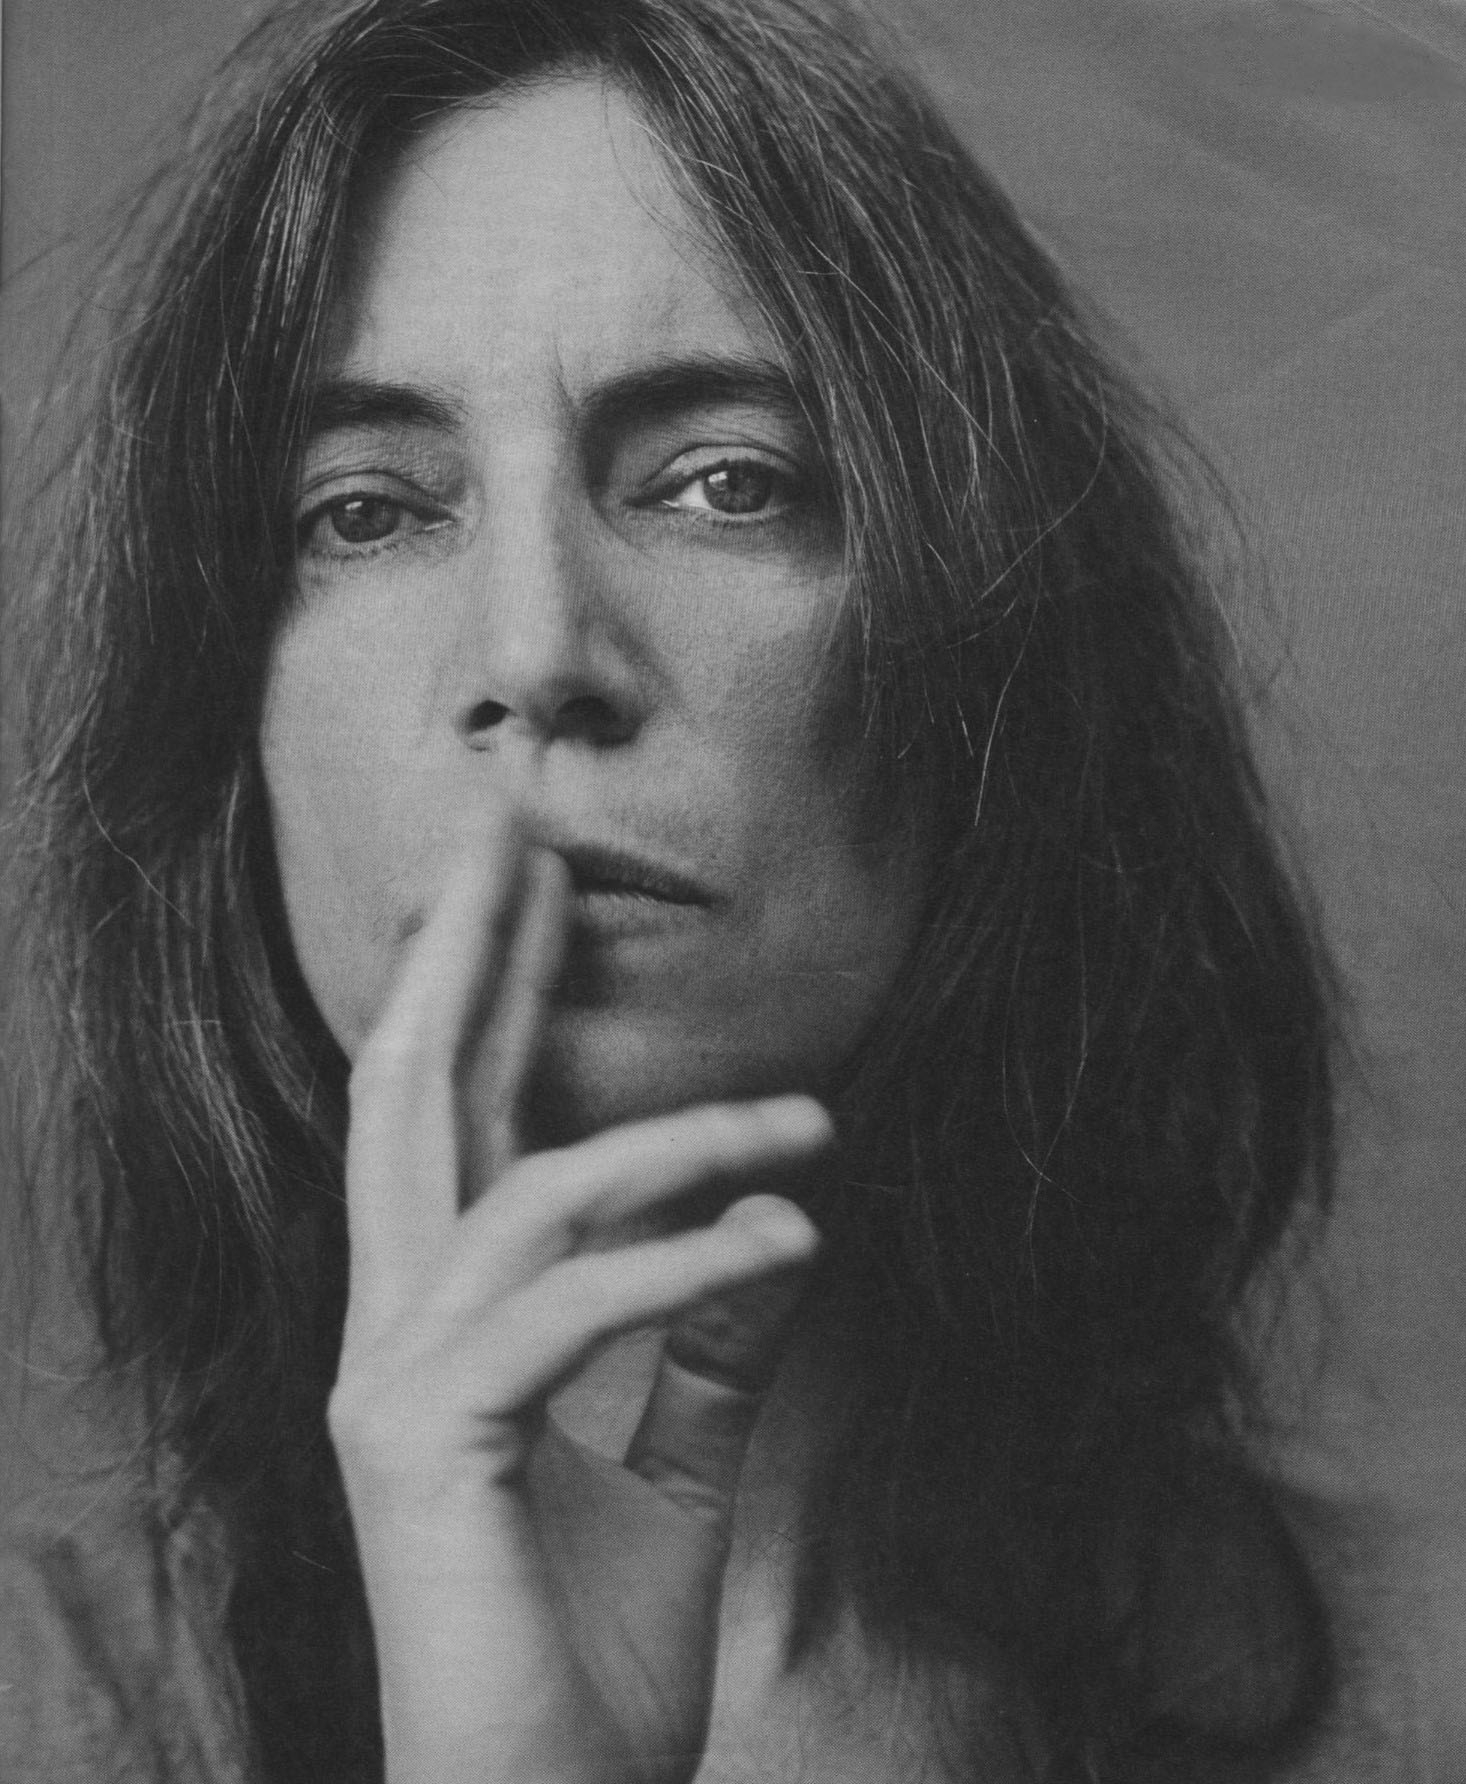 BECAUSE THE LIGHT PATTI SMITH PHOTOGRAPHY STEVEN KLEIN | NEW YORK INTERVIEW JUNE 1996